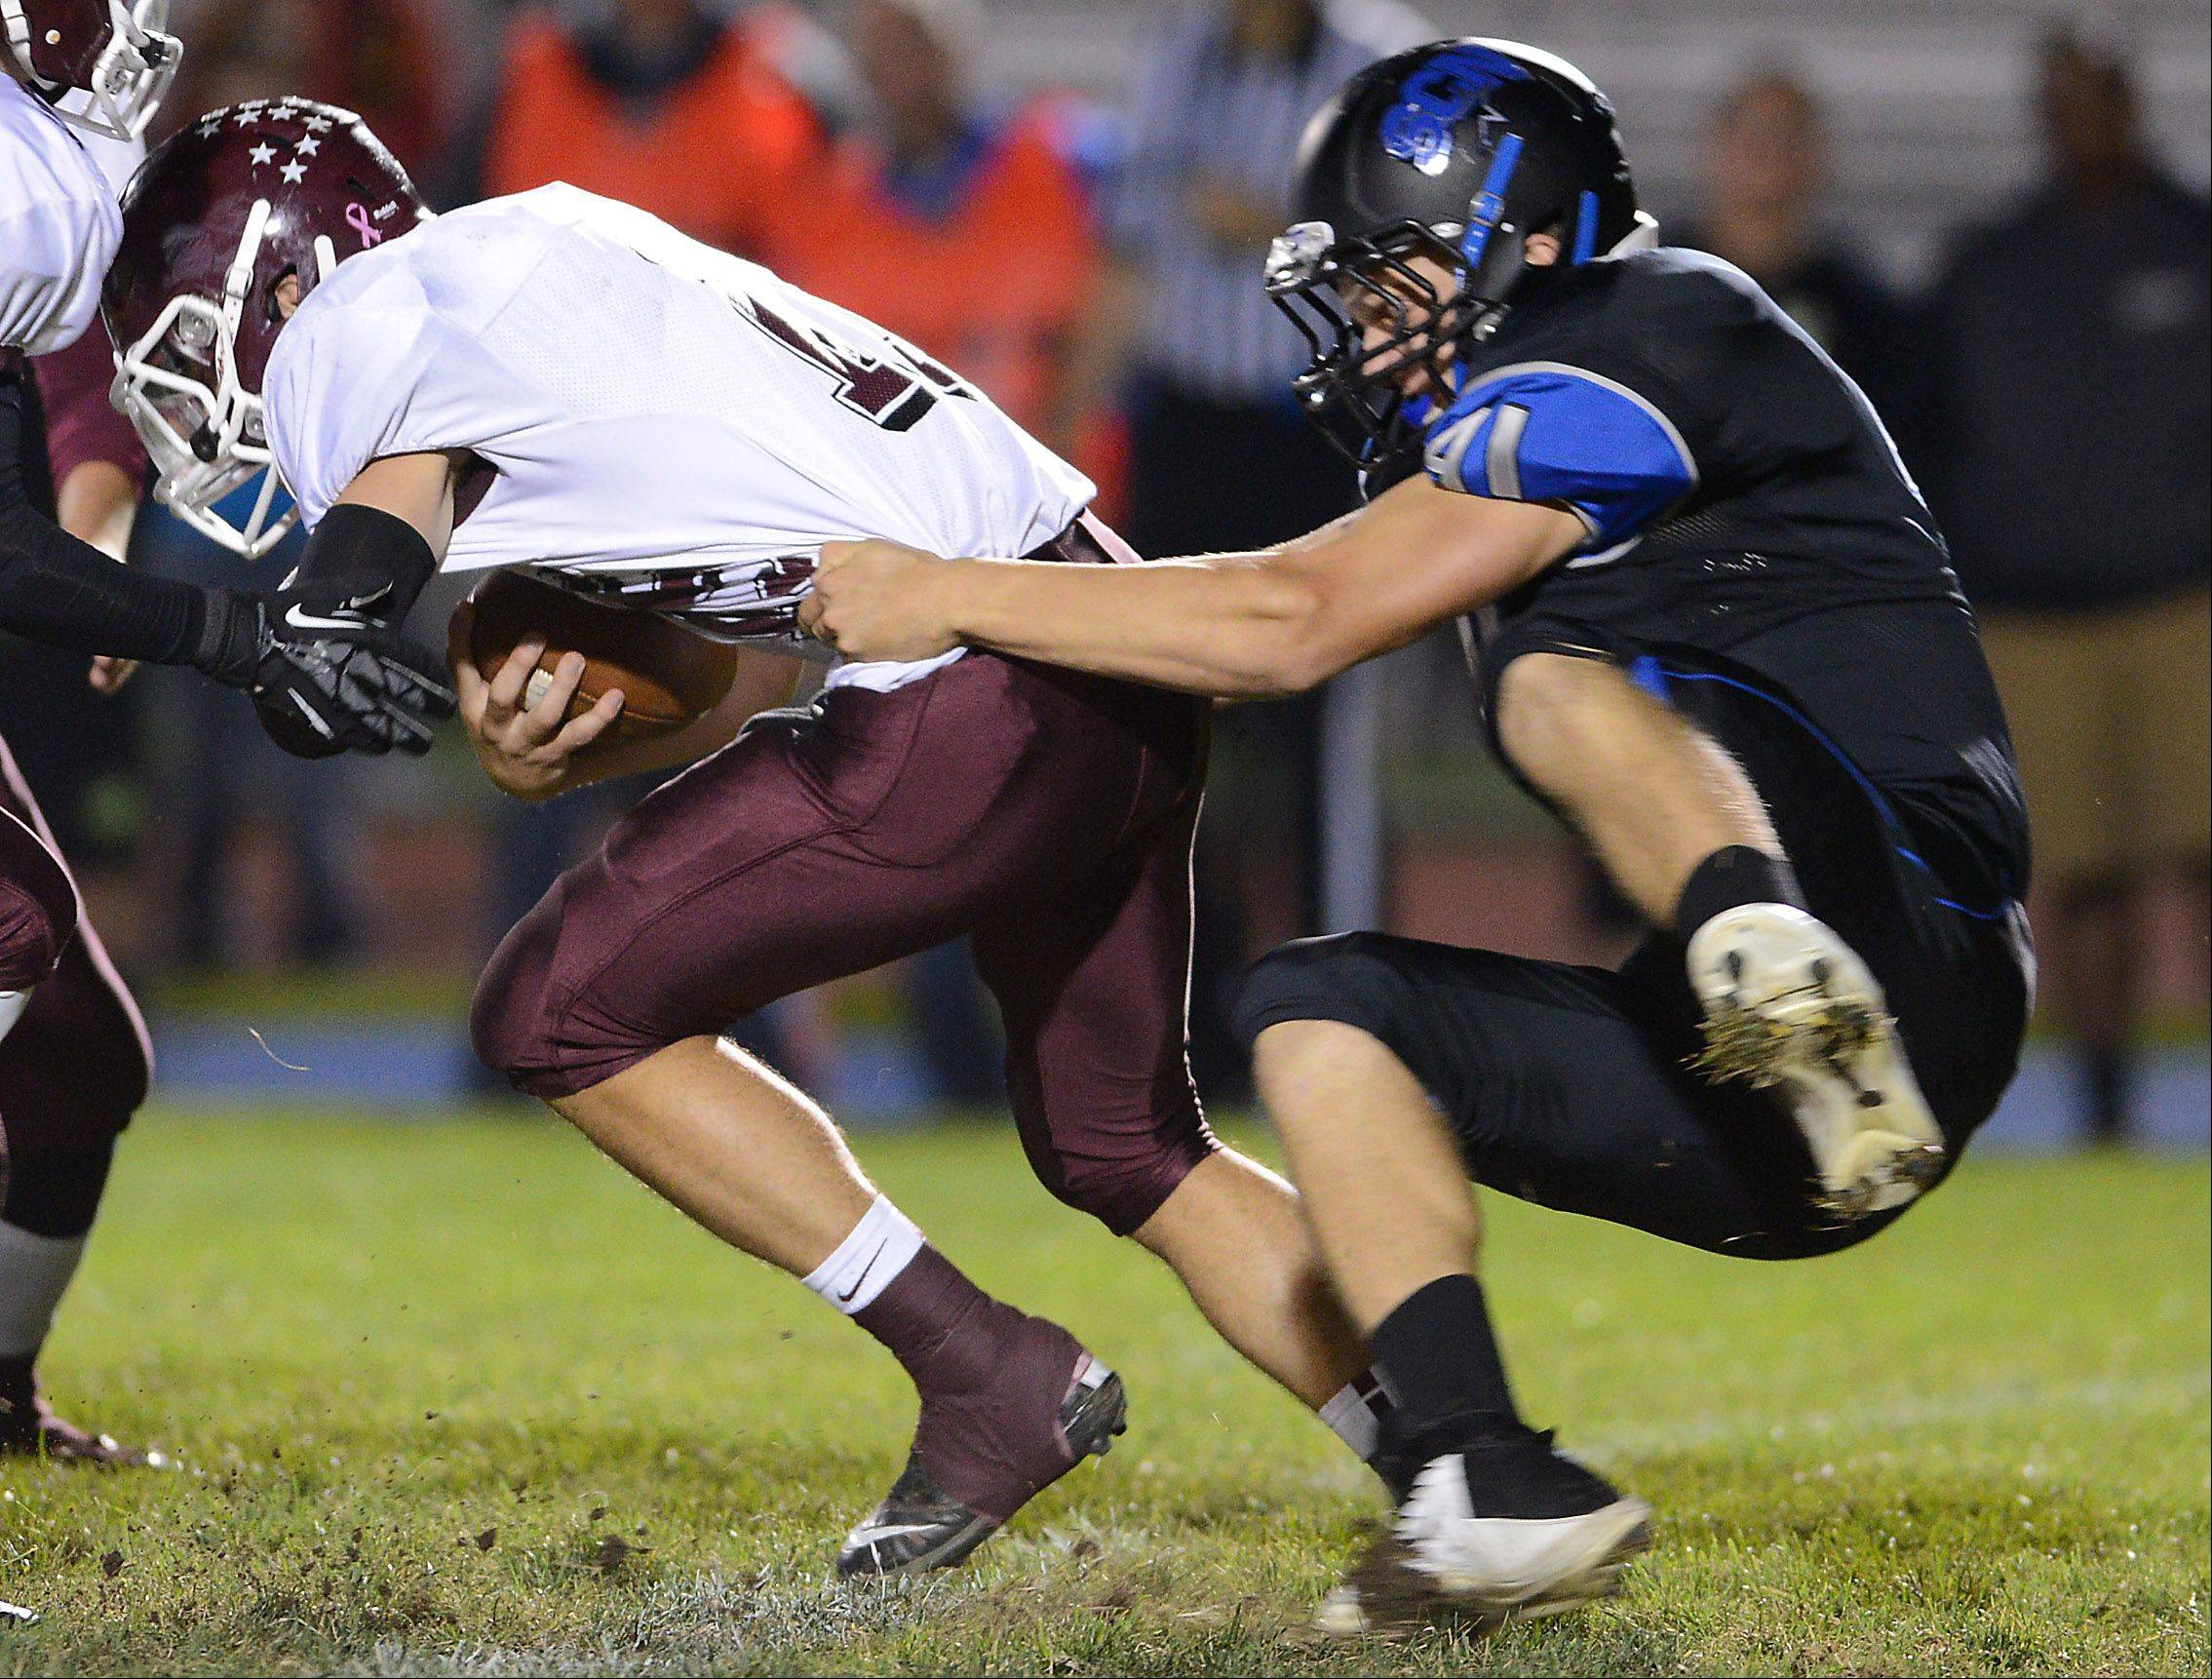 St. Charles North's Jordan Bergren (41) sacks Elgin's Ryan Sitter (15) on the first series of the game during Friday's game in St. Charles.